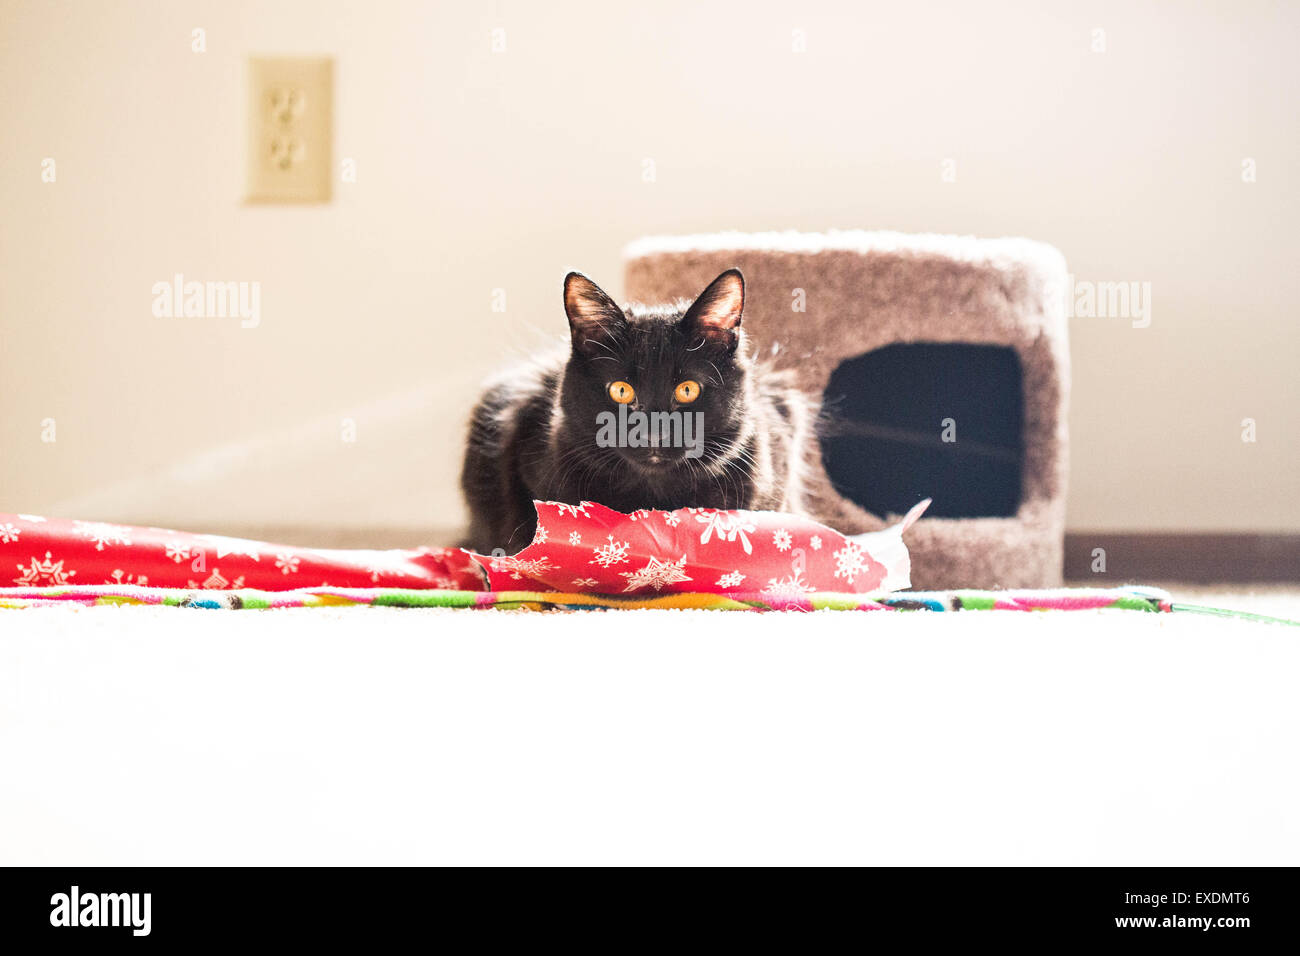 Domestic Longhair Black Cat with Yellow Eyes - Stock Image